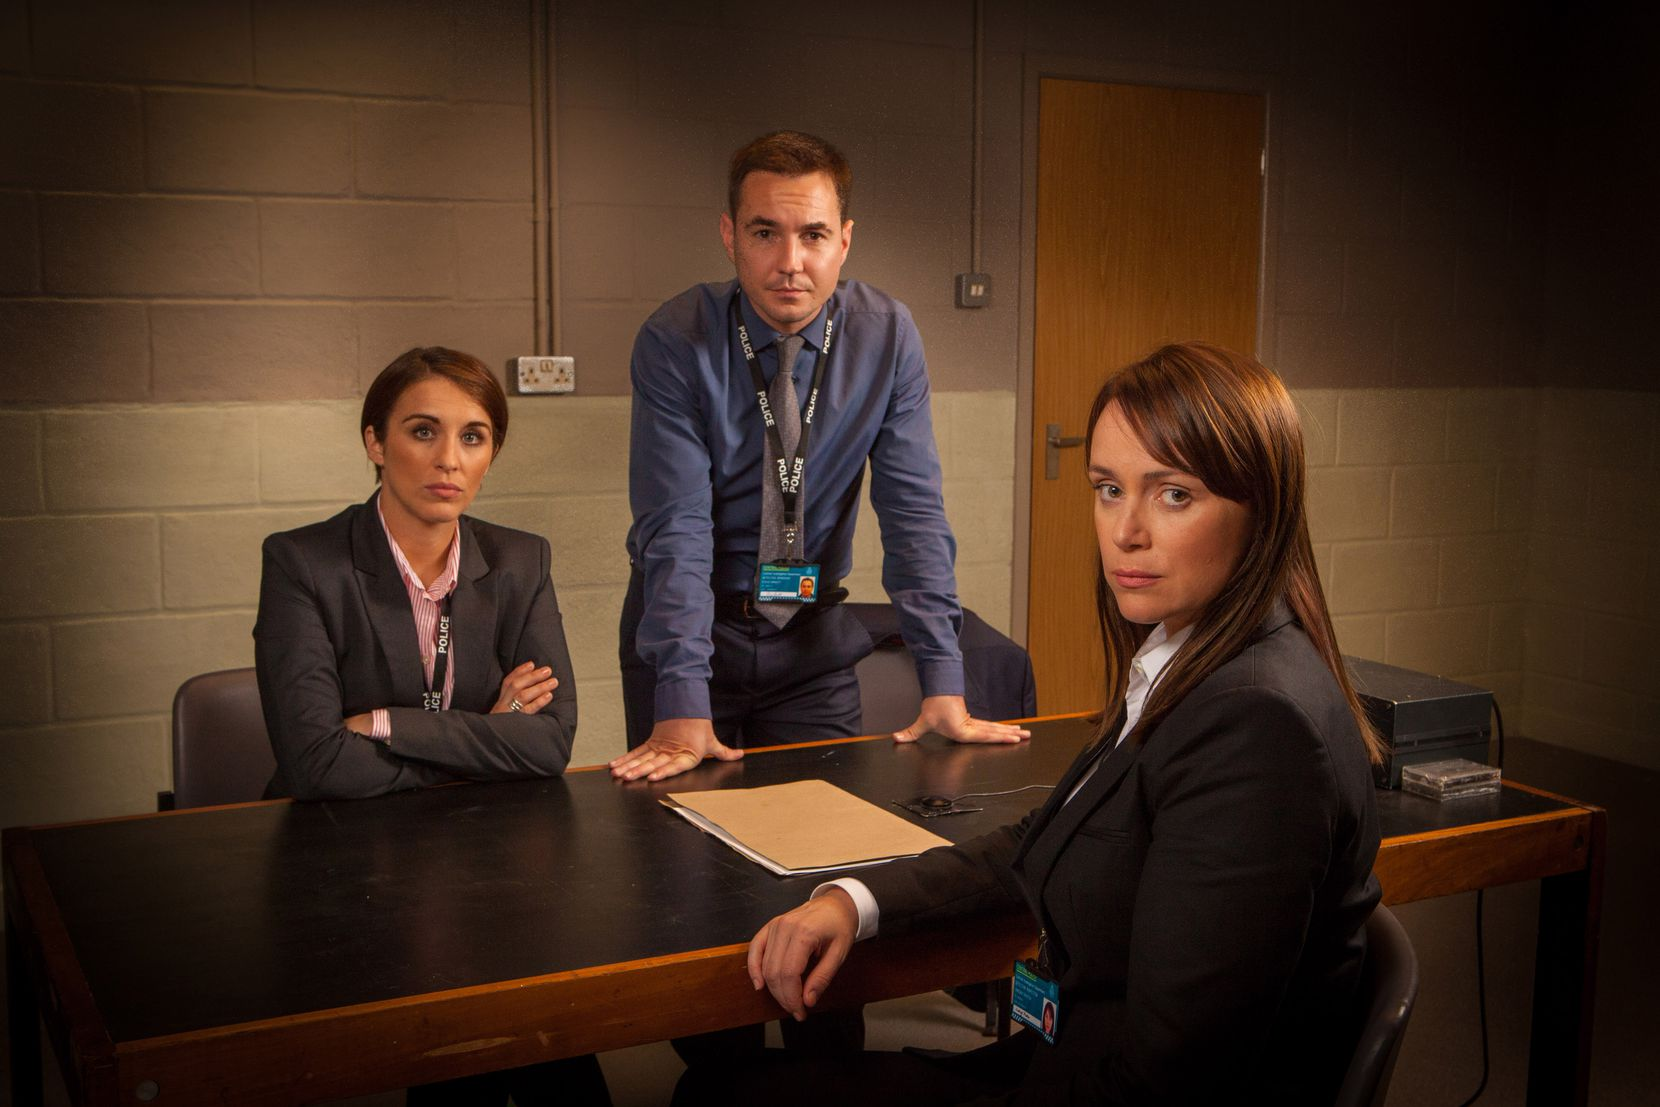 """From left to right, Vicky McClure, Martin Compston and Keeley Hawes star in Season 2 of the British series """"Line of Duty."""""""